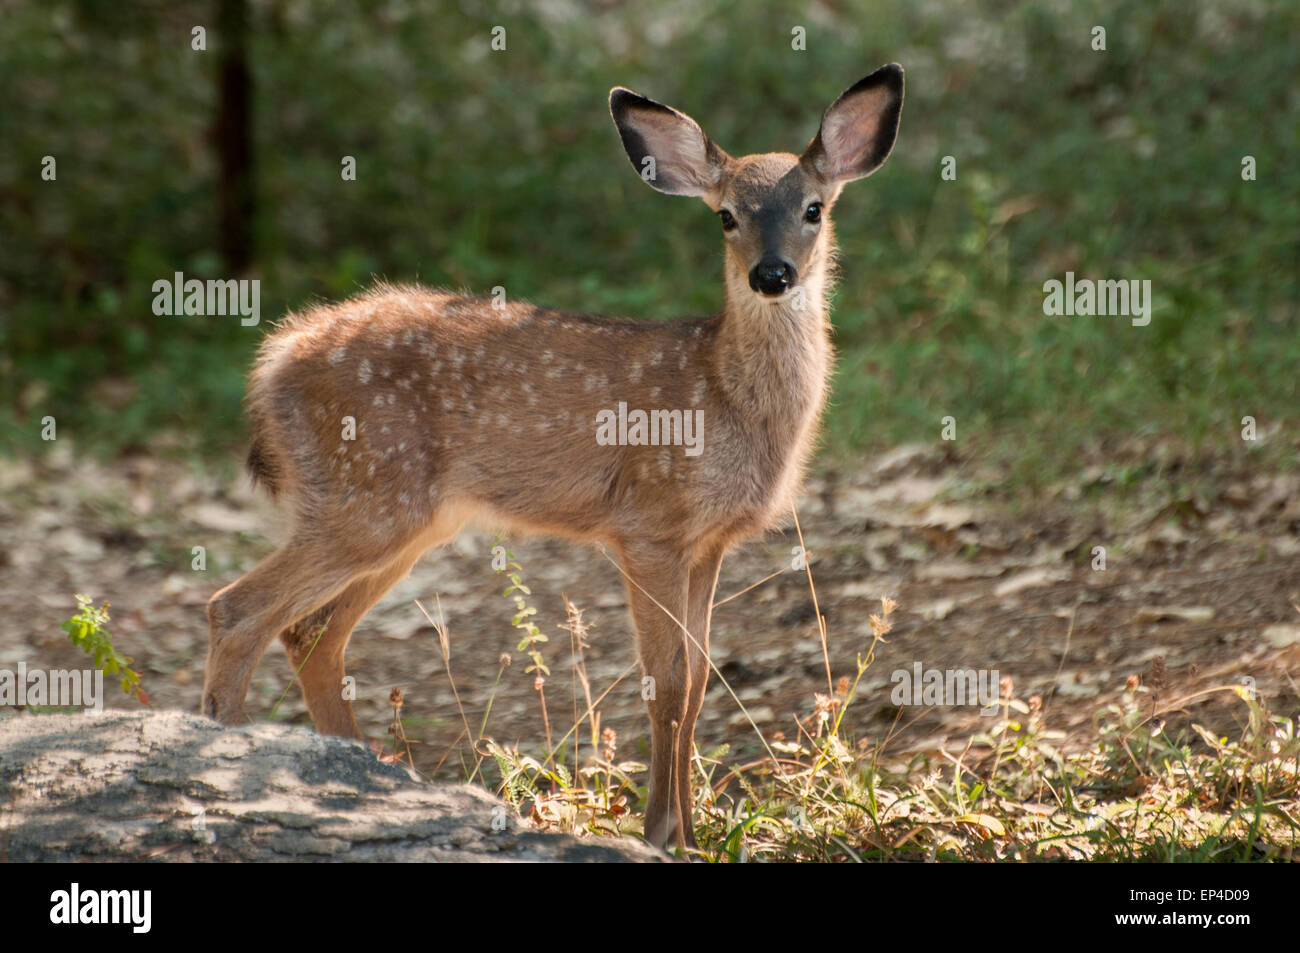 A young Mule Deer (Odocoileus hemionus) fawn, the Sierra foothills of Northern California - Stock Image